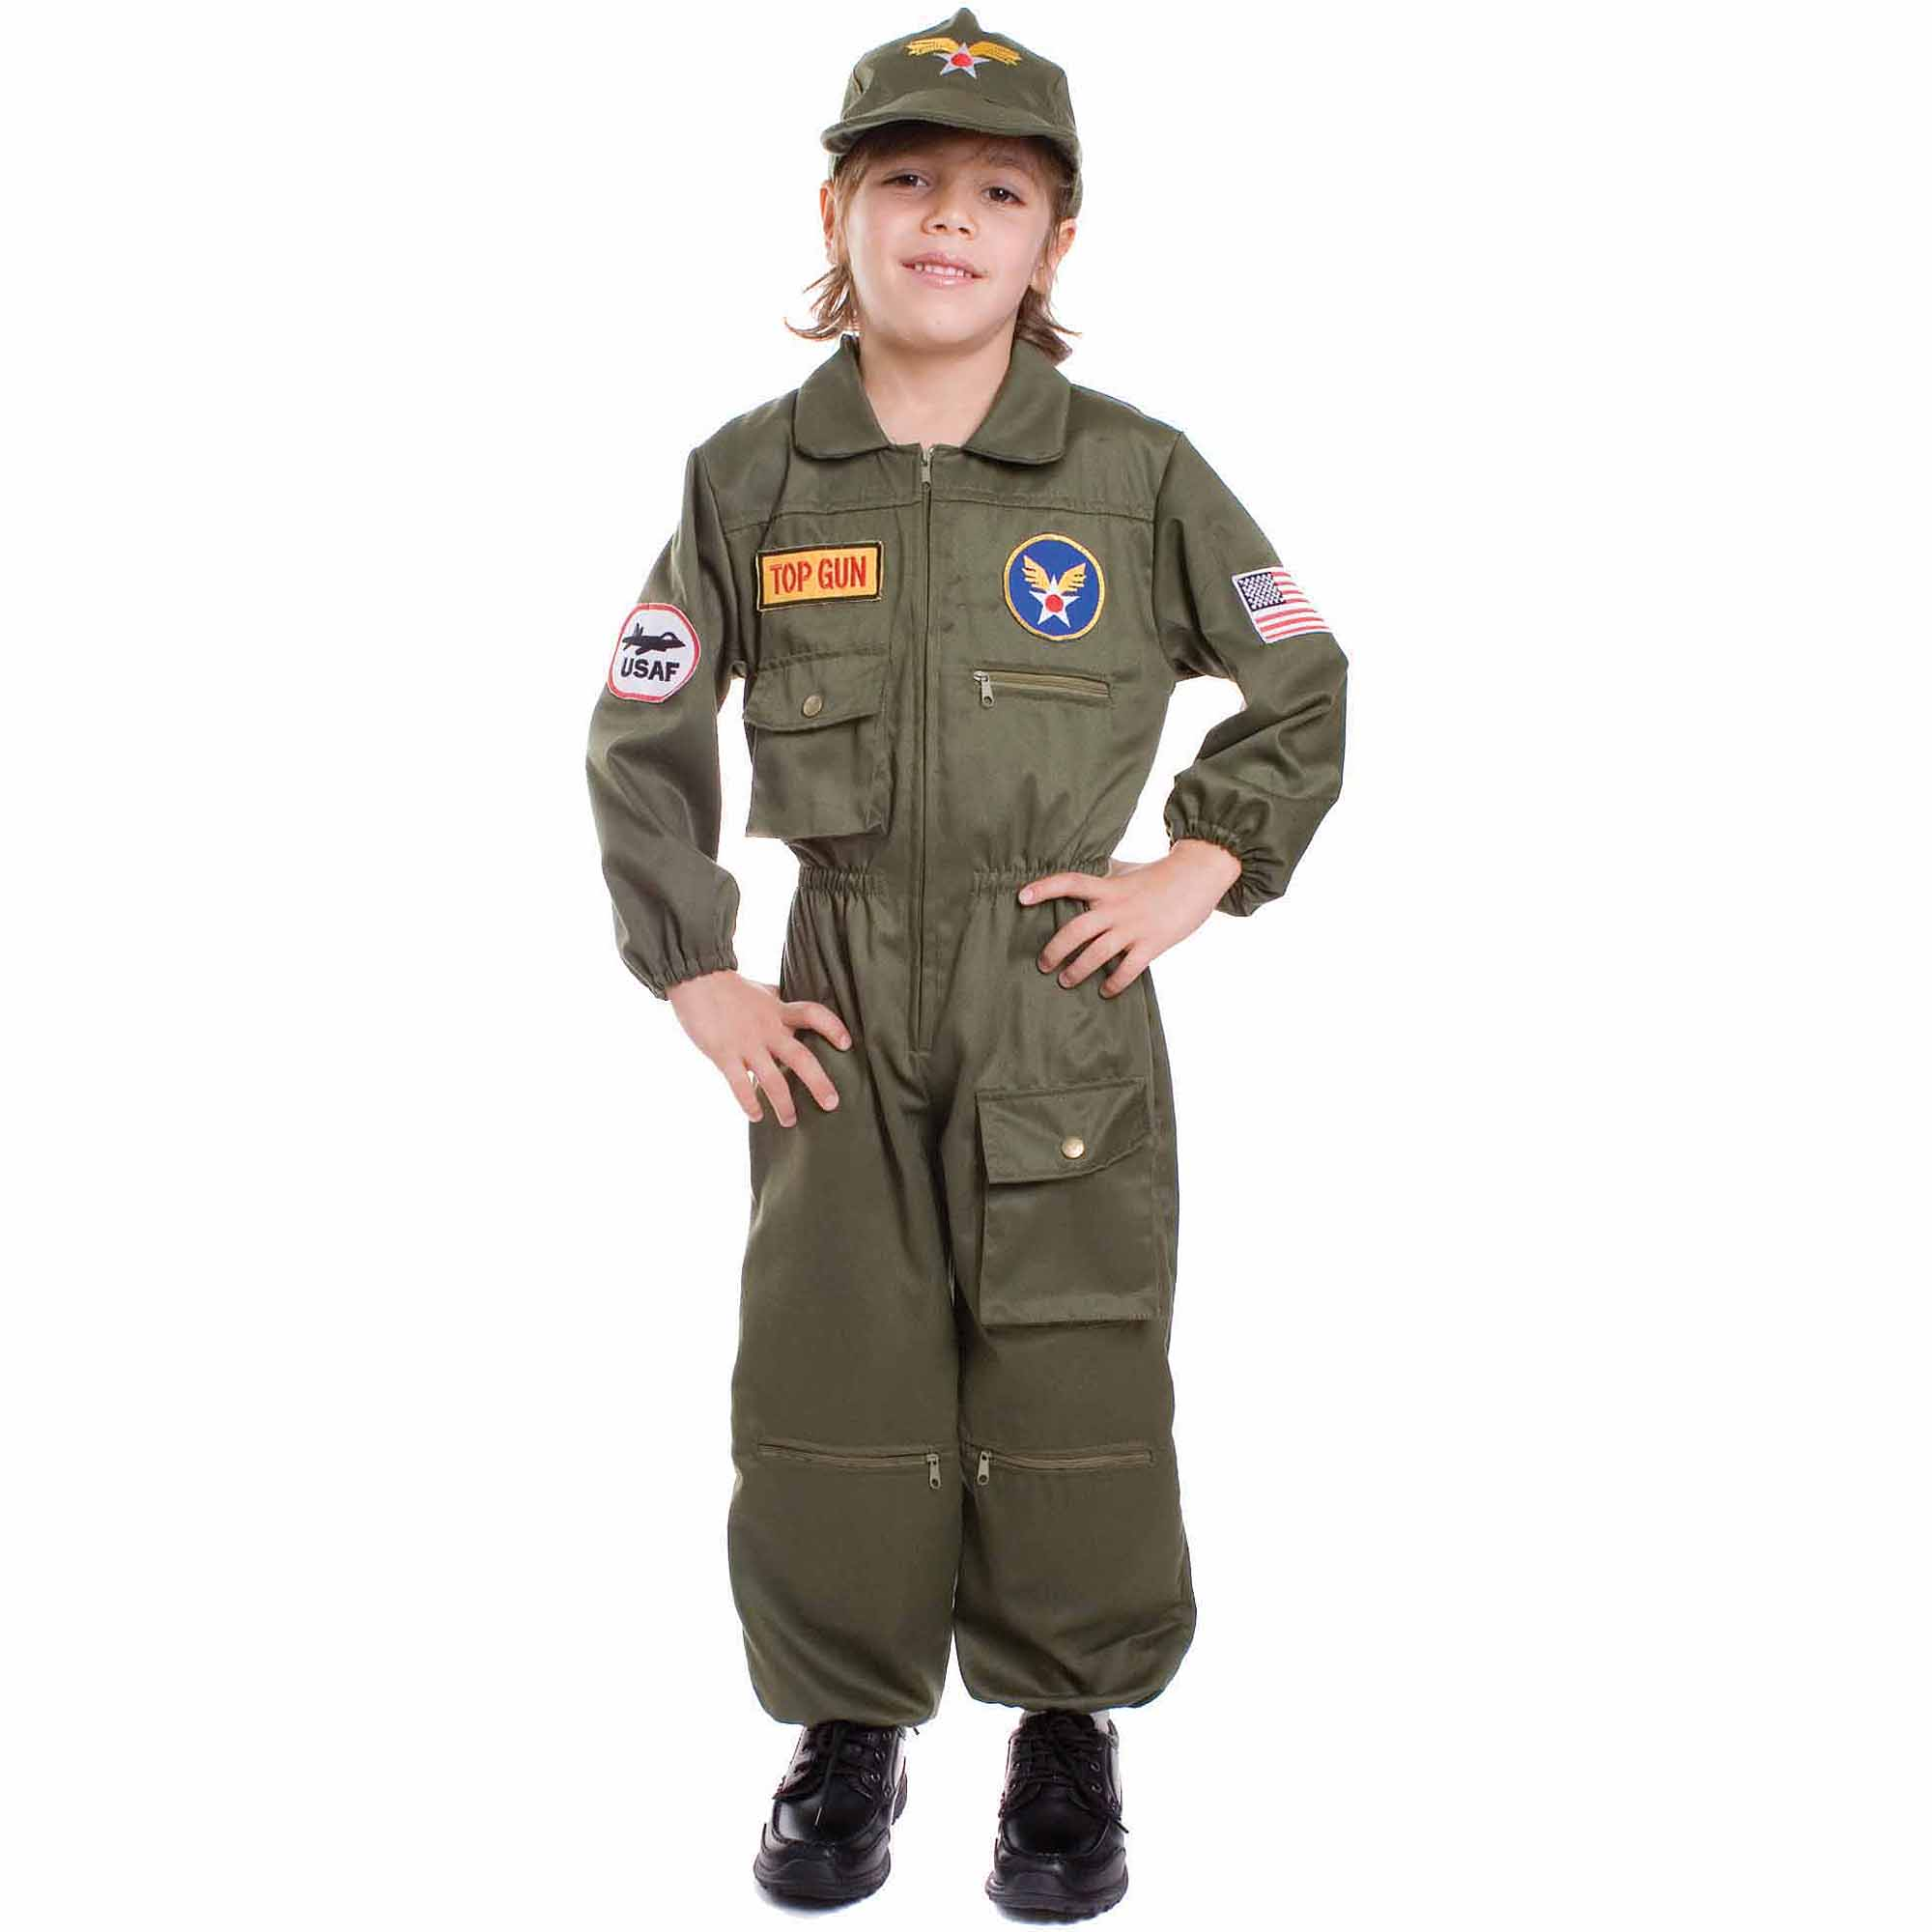 sc 1 st  Walmart & Air Force Pilot Child Halloween Costume - Walmart.com